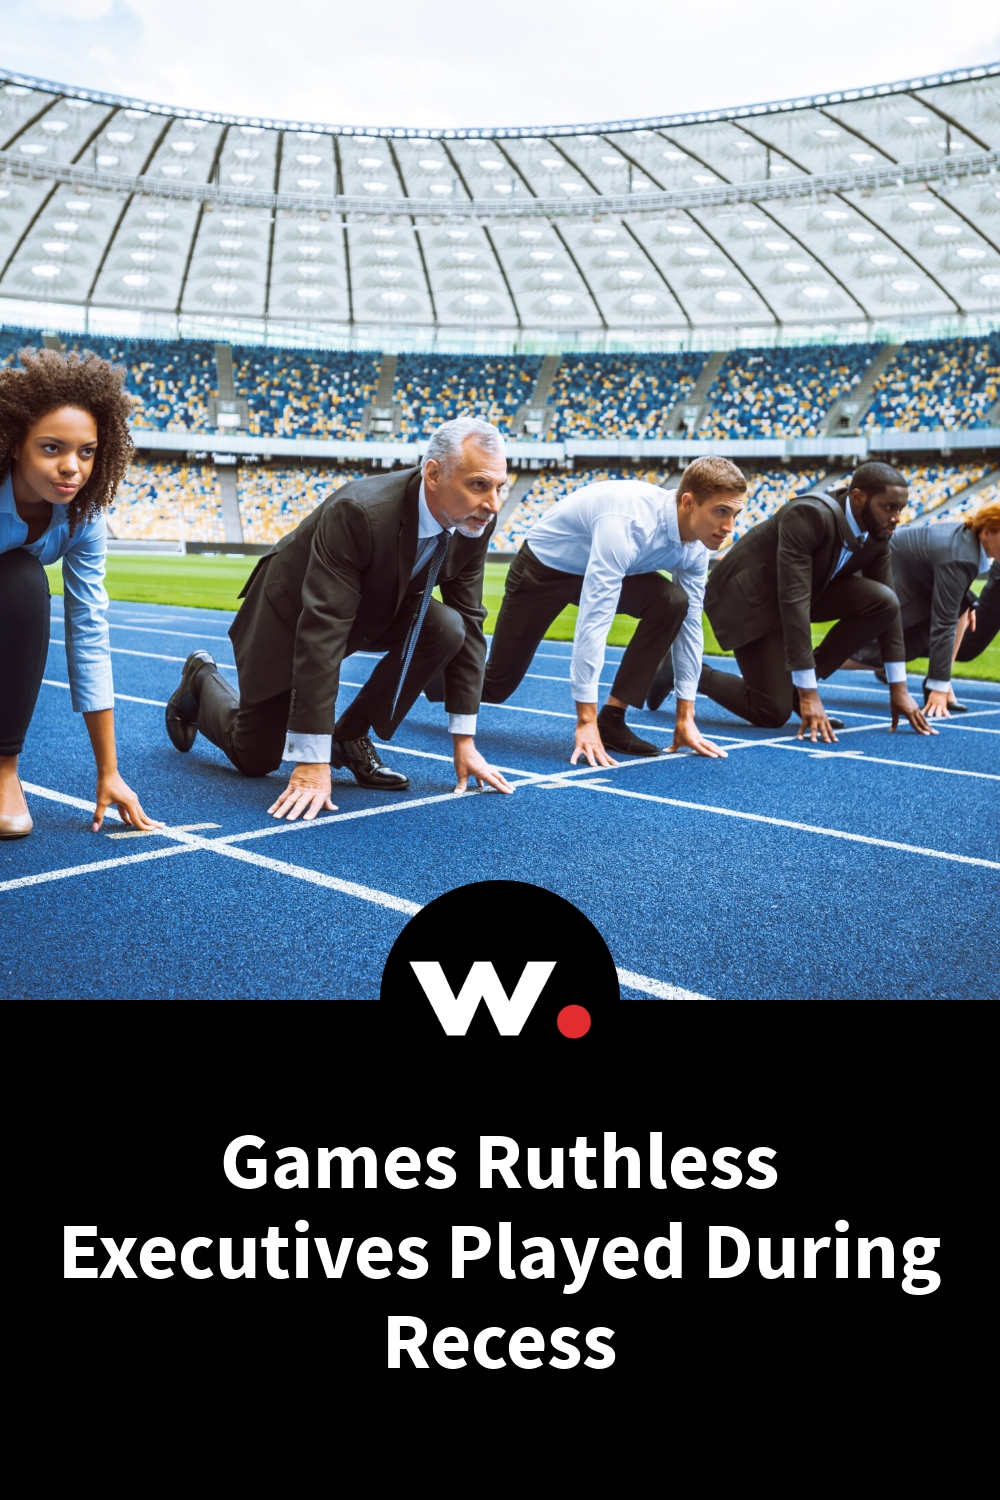 Games Ruthless Executives Played During Recess